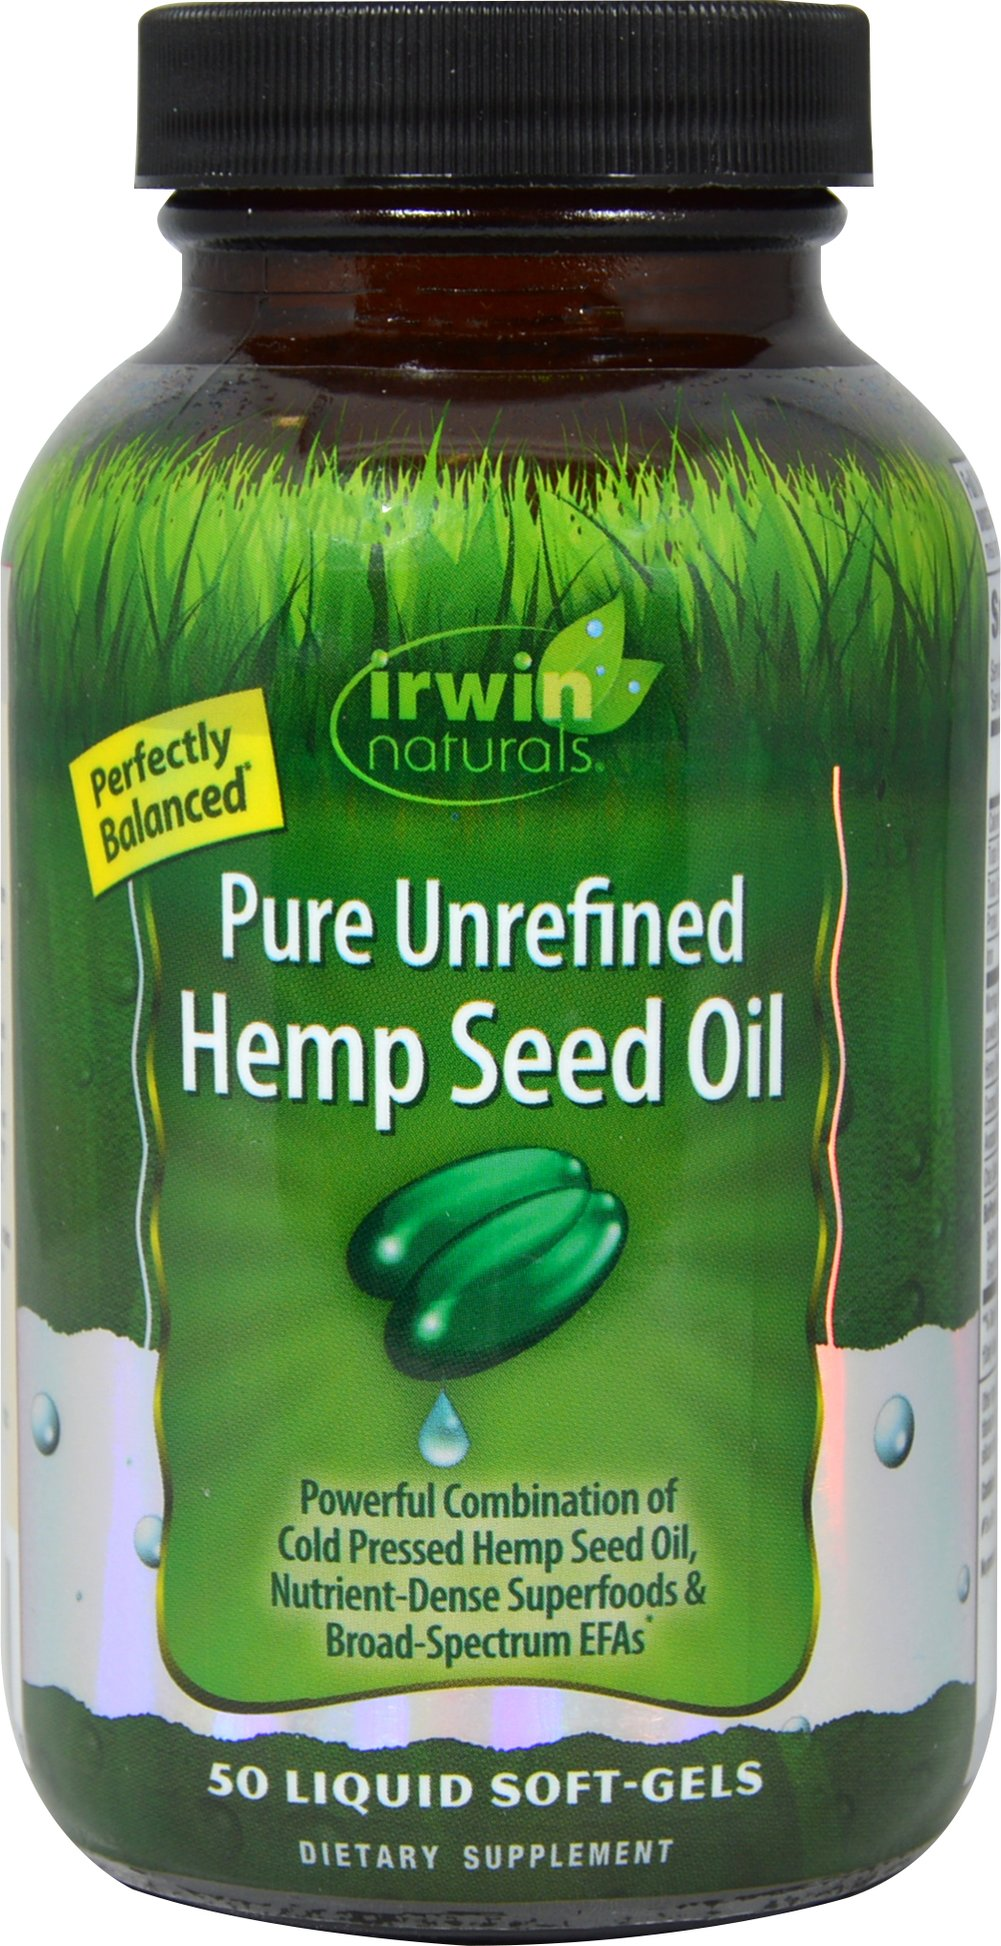 Pure Unrefined Hemp Seed Oil